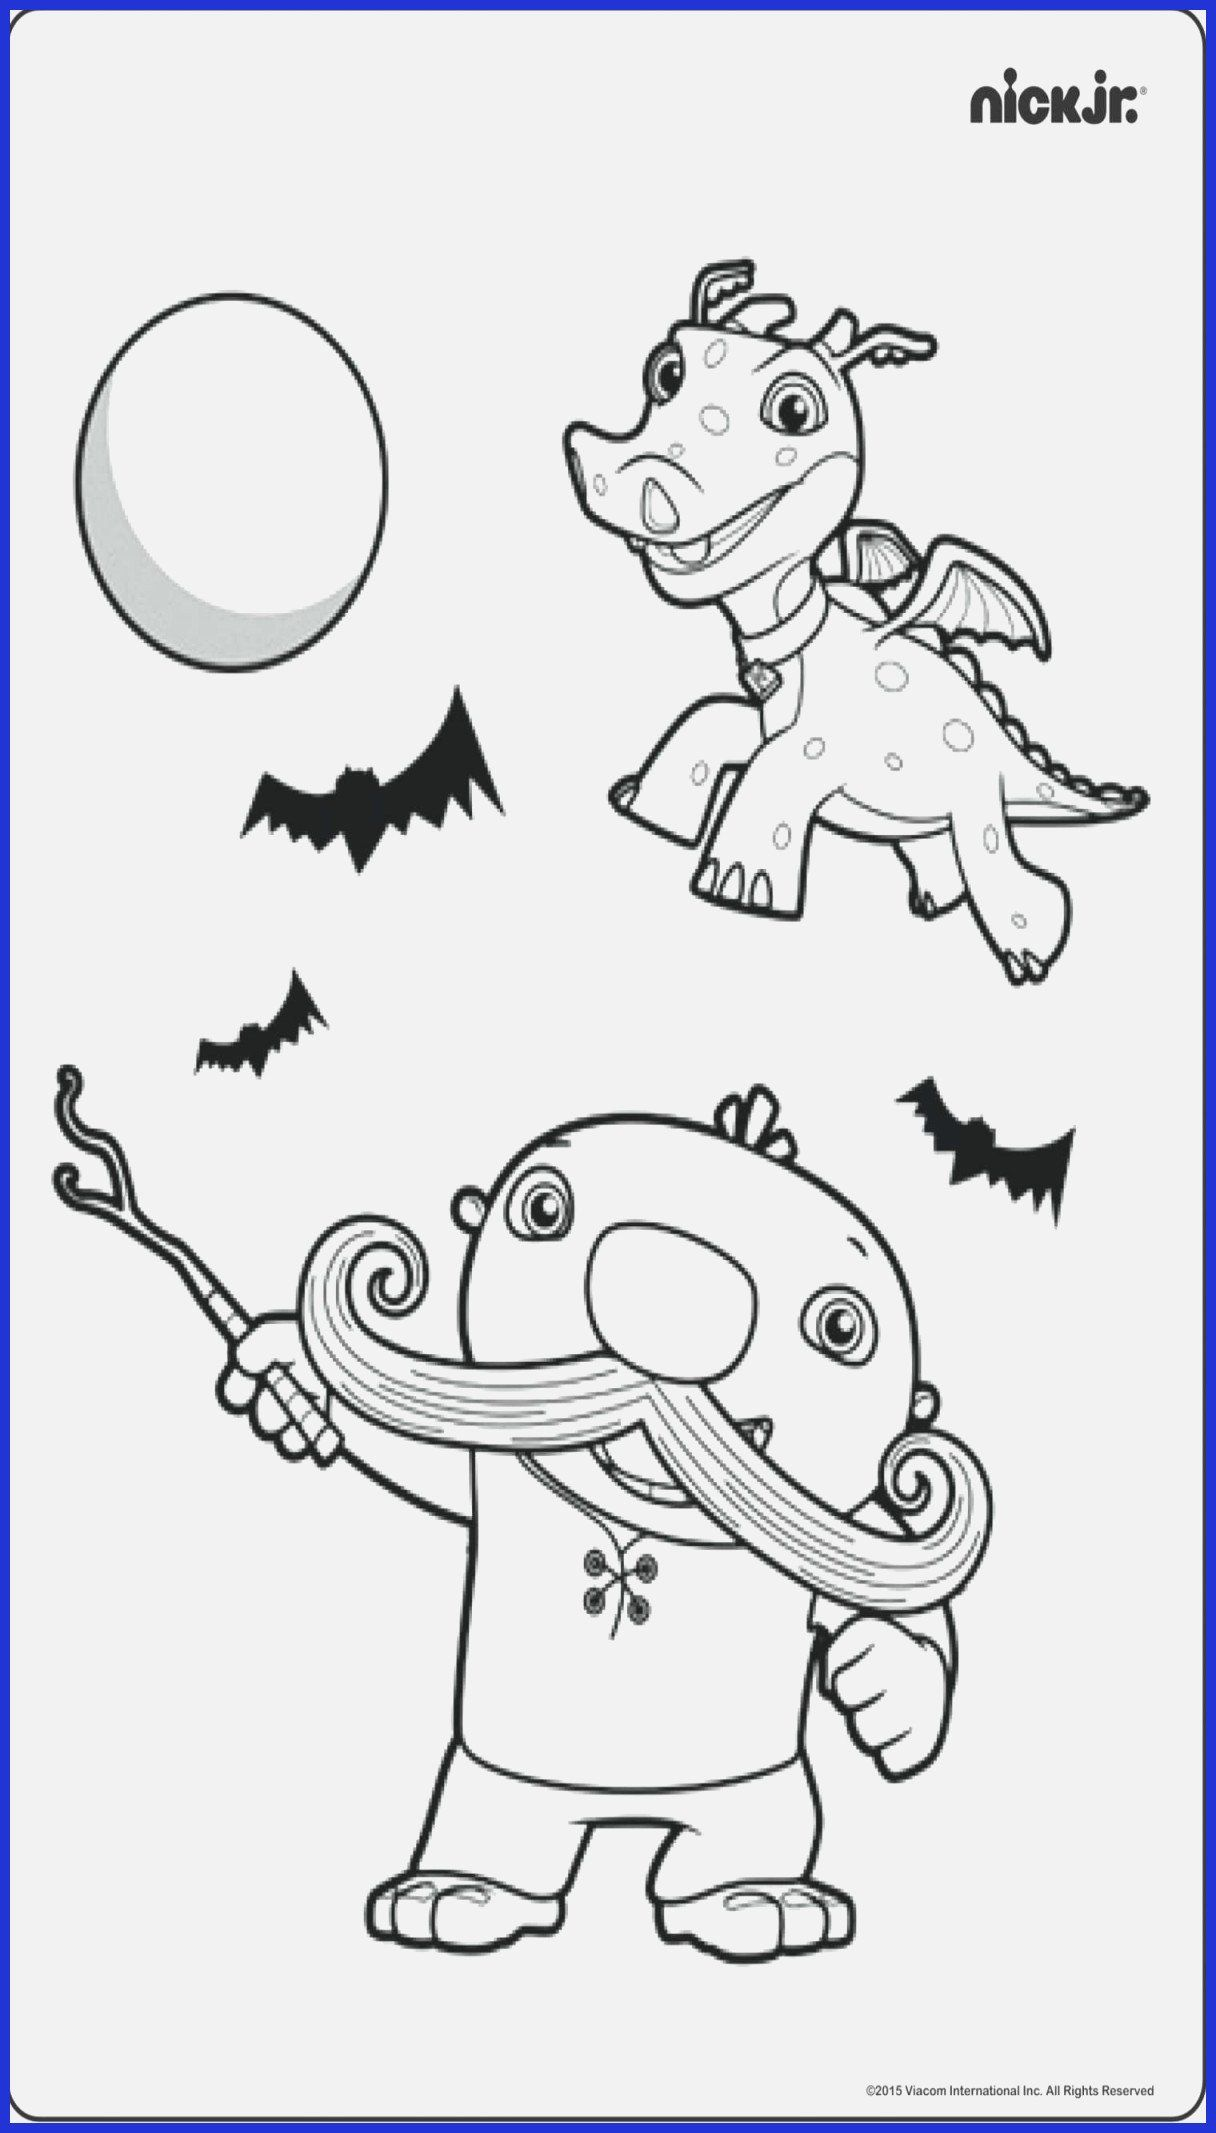 Nick Jr Coloring Pages Fresh 16 Coloring Book Nick Jr Cartoon Coloring Pages Nick Jr Coloring Pages Disney Coloring Pages